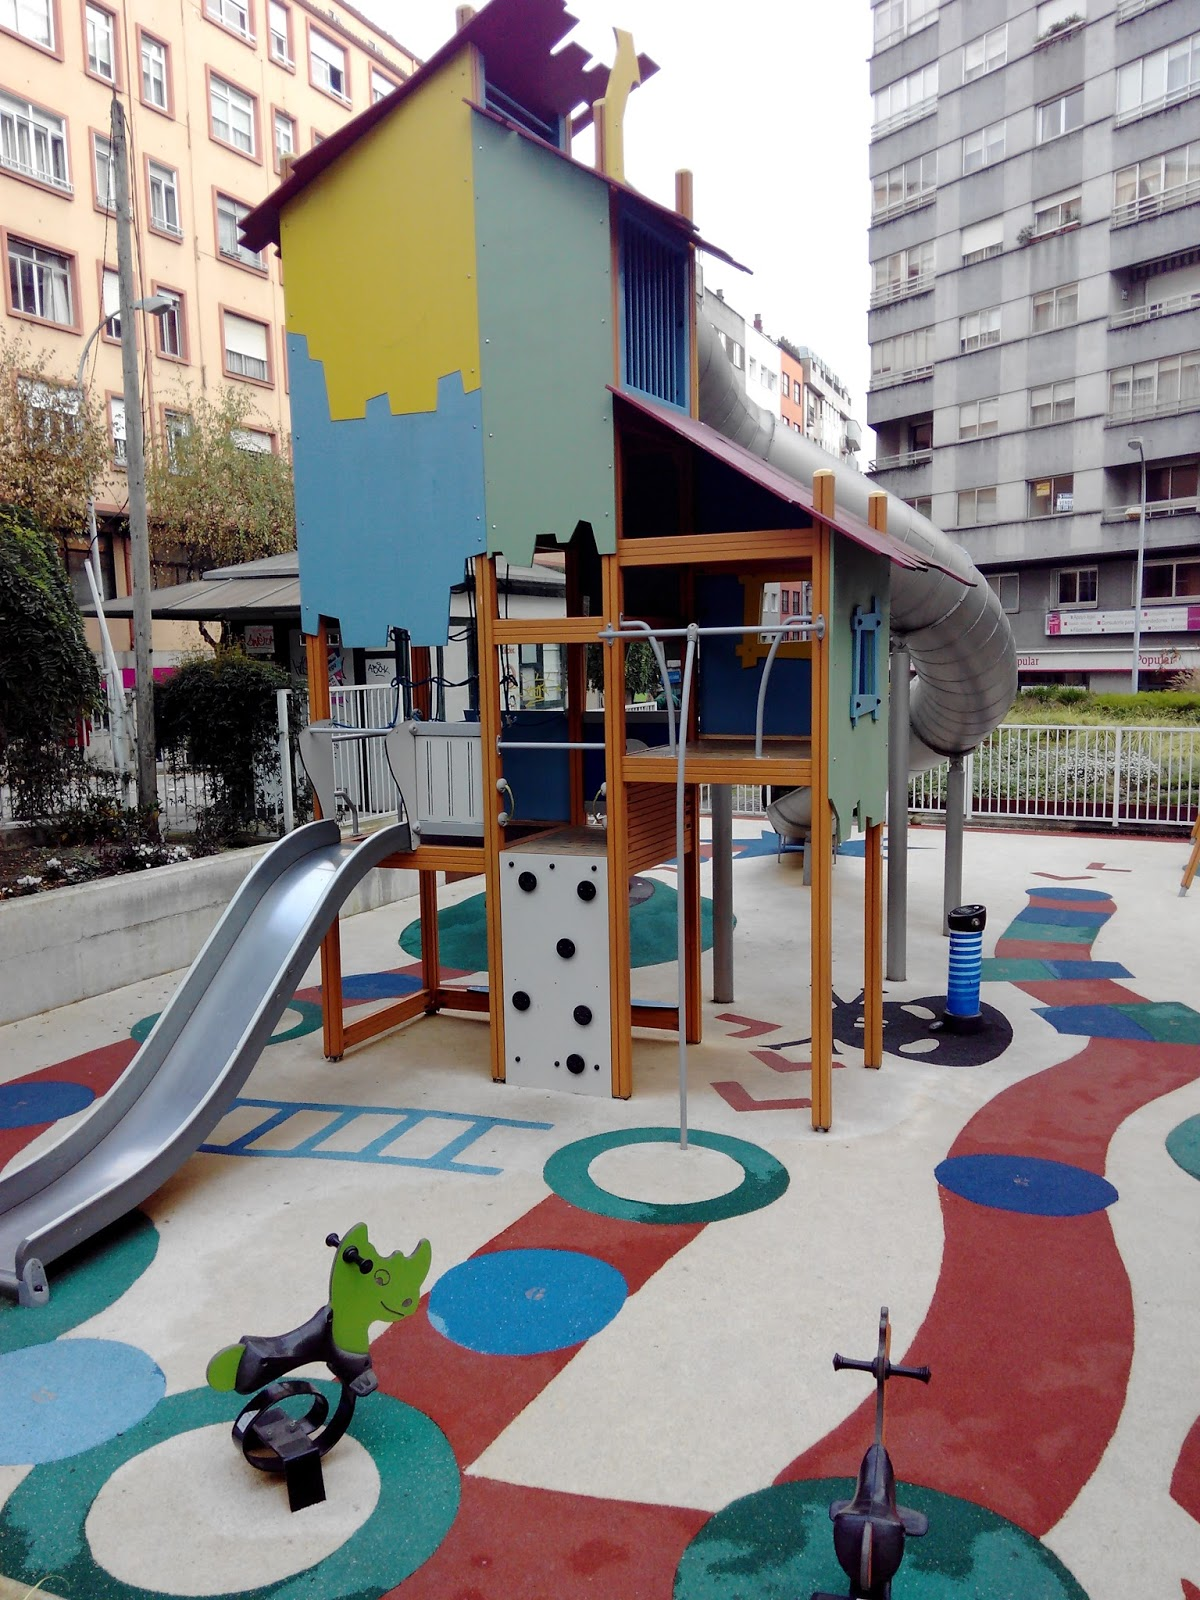 santiago con ni os el parque infantil de la plaza de vigo escapalandia. Black Bedroom Furniture Sets. Home Design Ideas